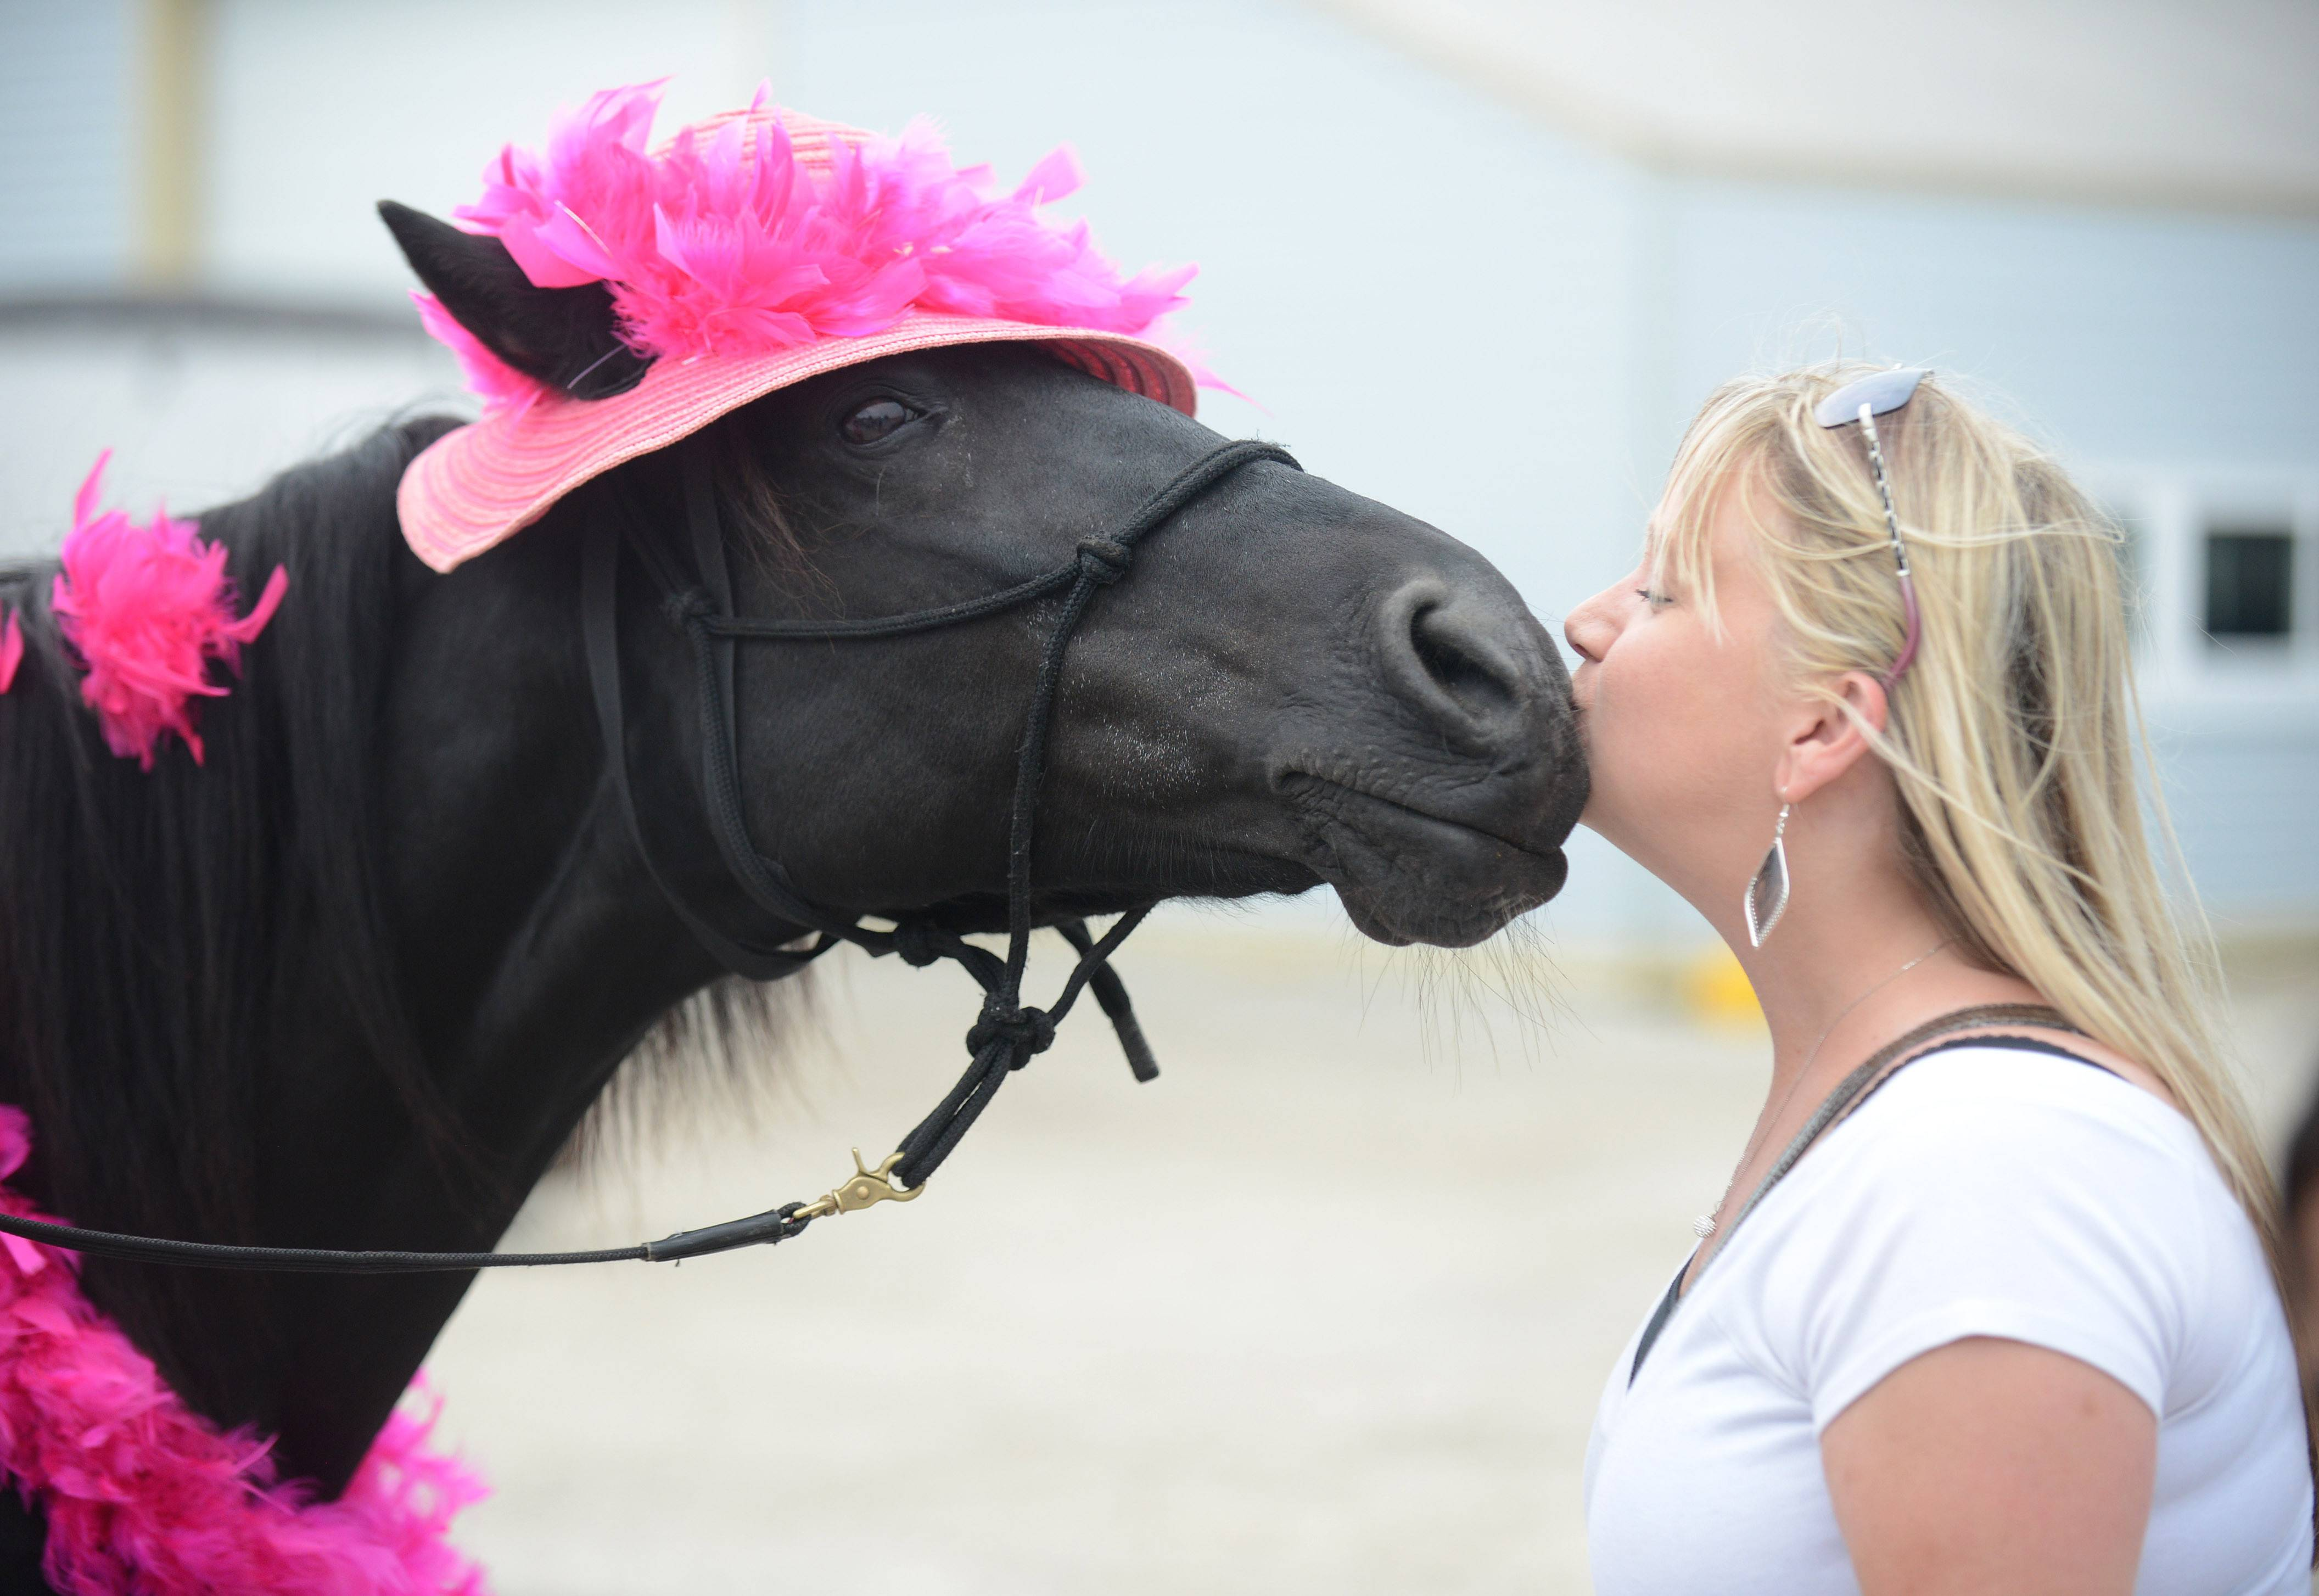 Magic the horse puckers up to plant a kiss on Michelle Tuozzo, of Huntley, at the Festival of the Horse & Drum at the Kane County Fairgrounds in St. Charles Saturday. Magic, 21, and her owner, Peggy Gower of Wayne, were walking around the grounds showing off the tricks Magic could perform and doled out kisses.